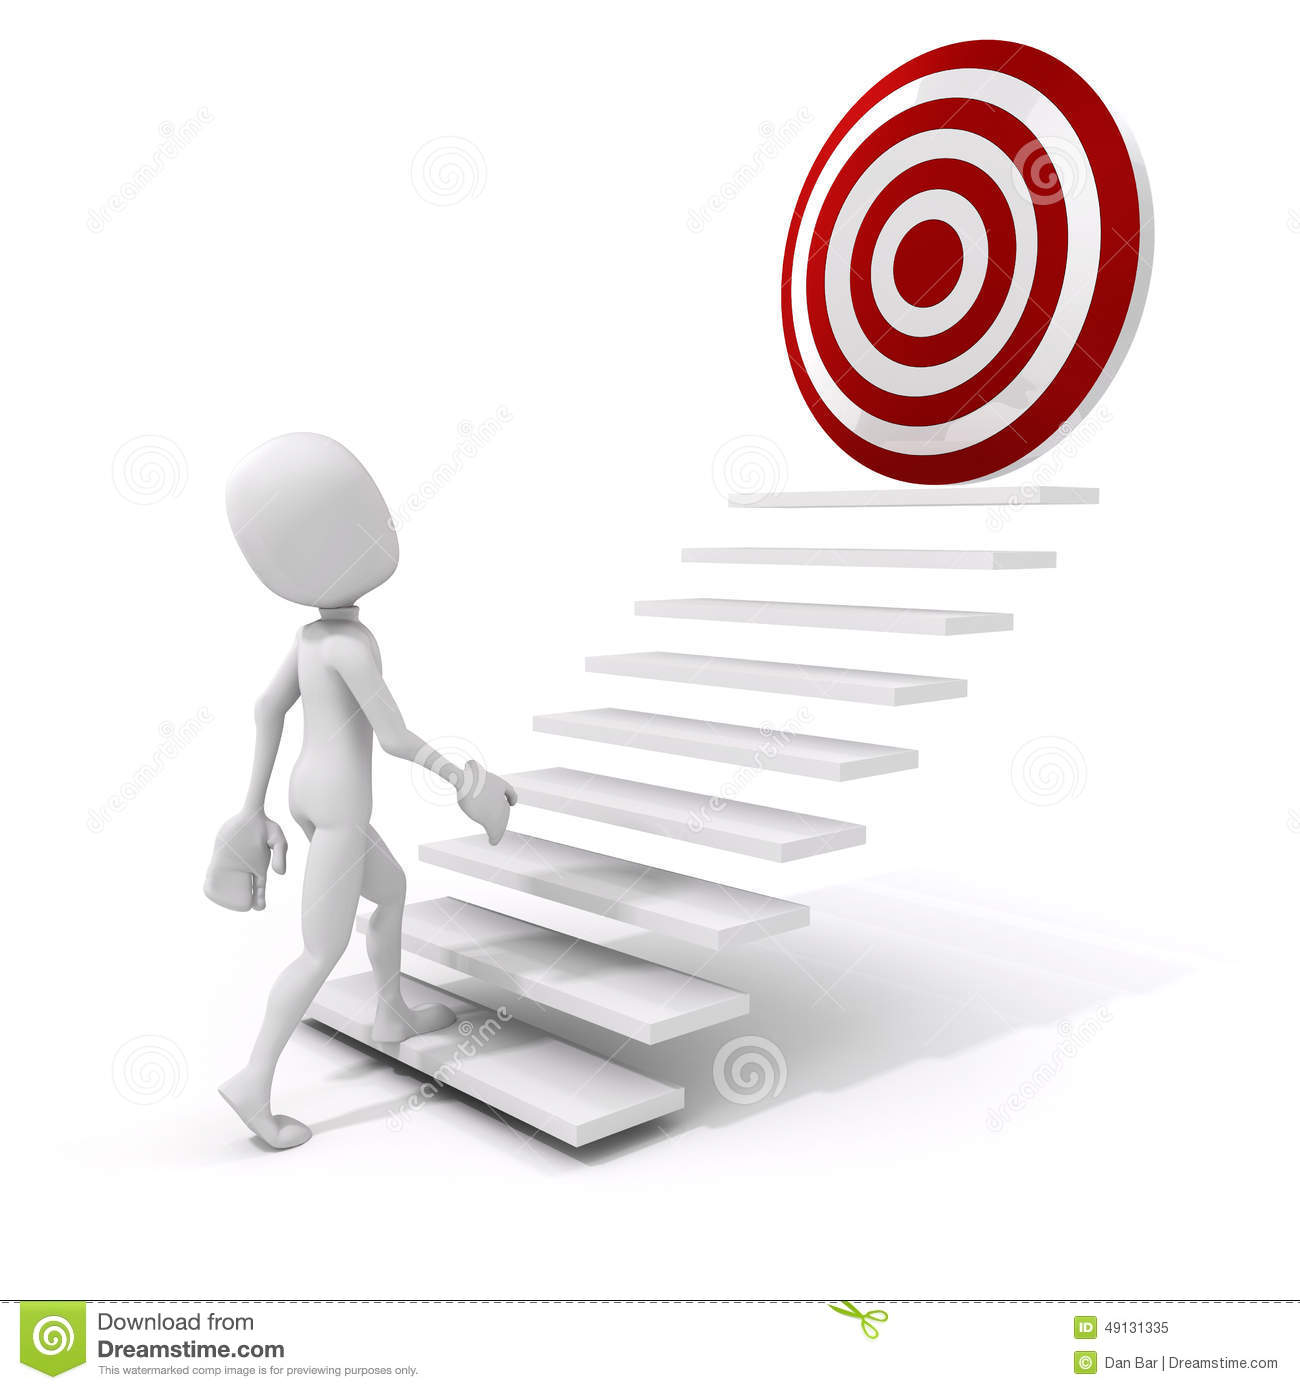 3d Man Climbing On A Stair To Success Stock Illustration ... for Climbing Stairs To Success  587fsj